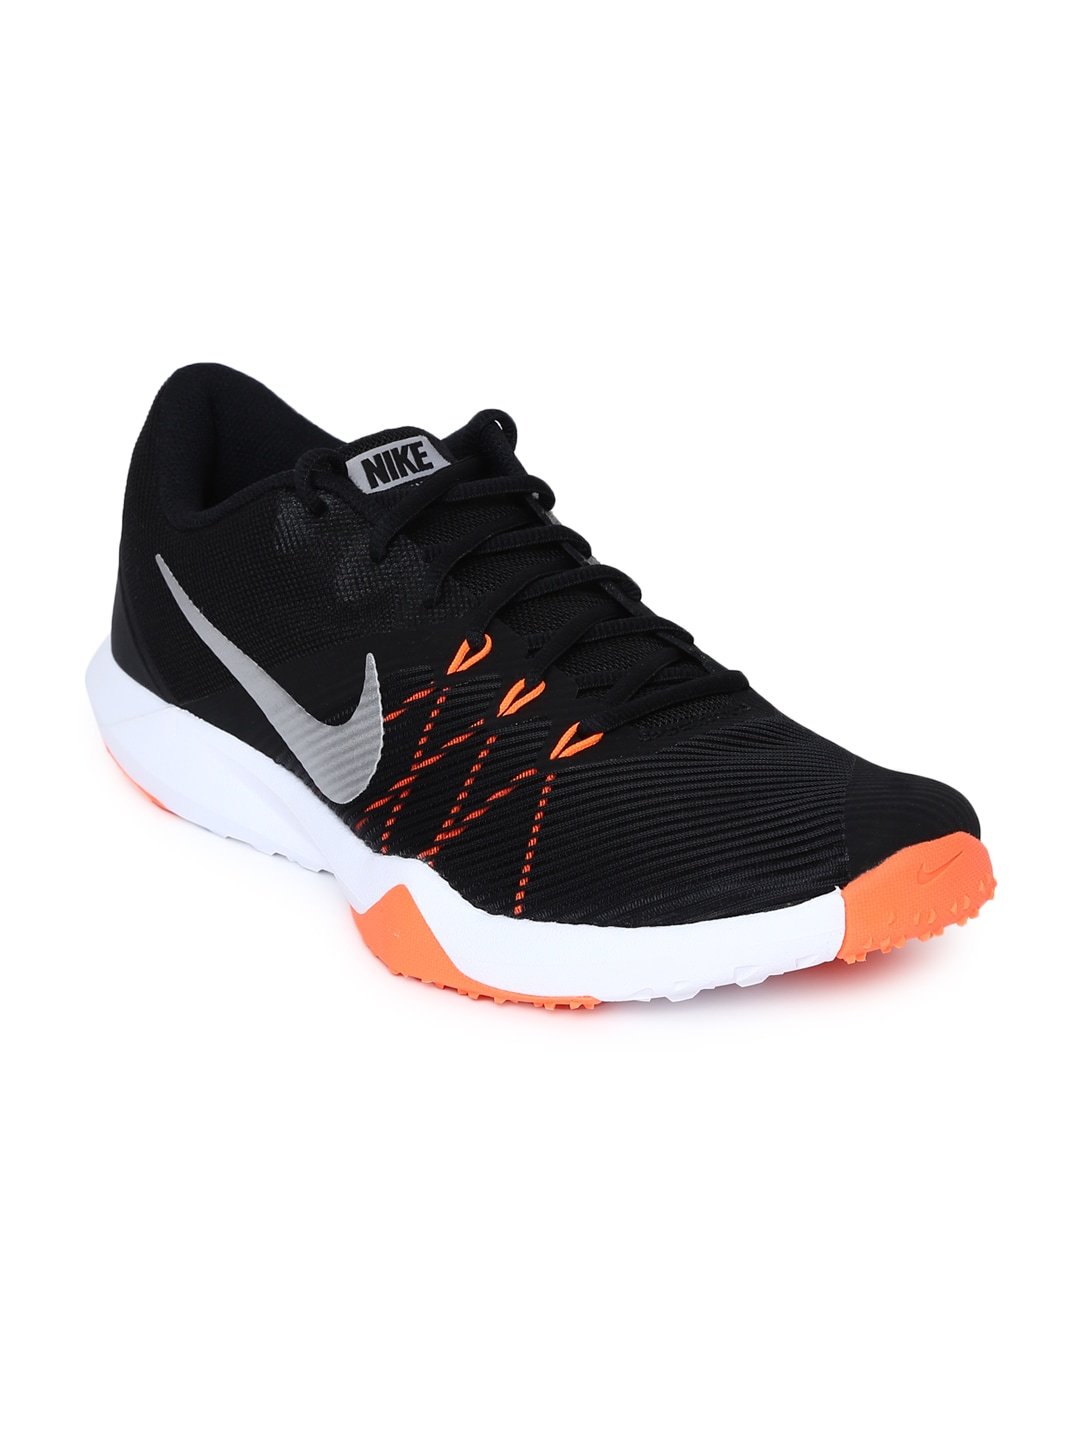 quality design 2cd15 951ac Search - T90 Nike Studs   Buy T90 Nike Studs Online in India at Best Price